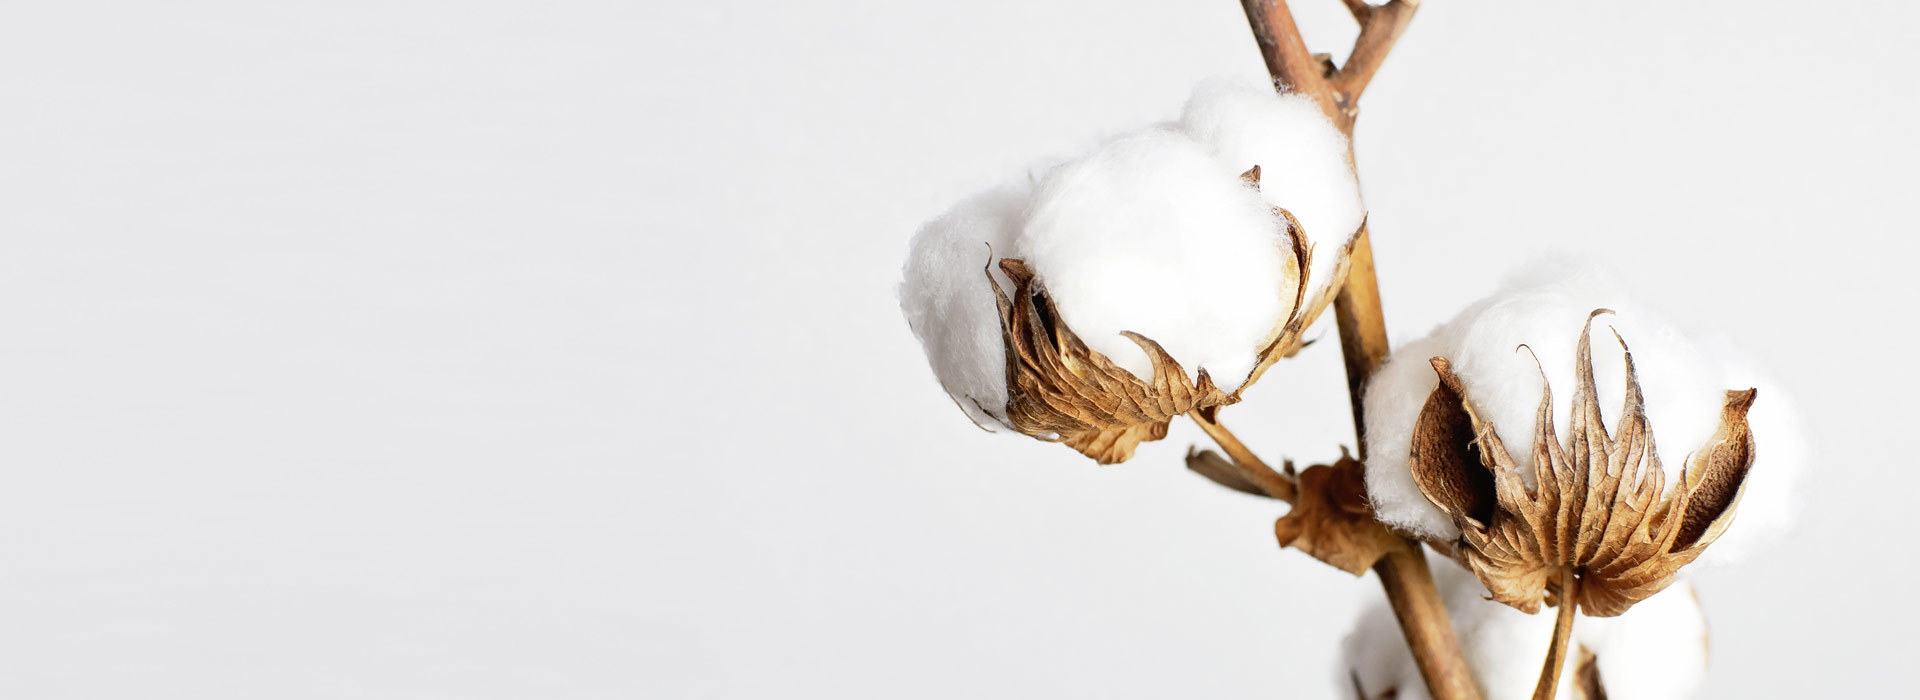 Sustainable clothing from organic and cruelty-free materials